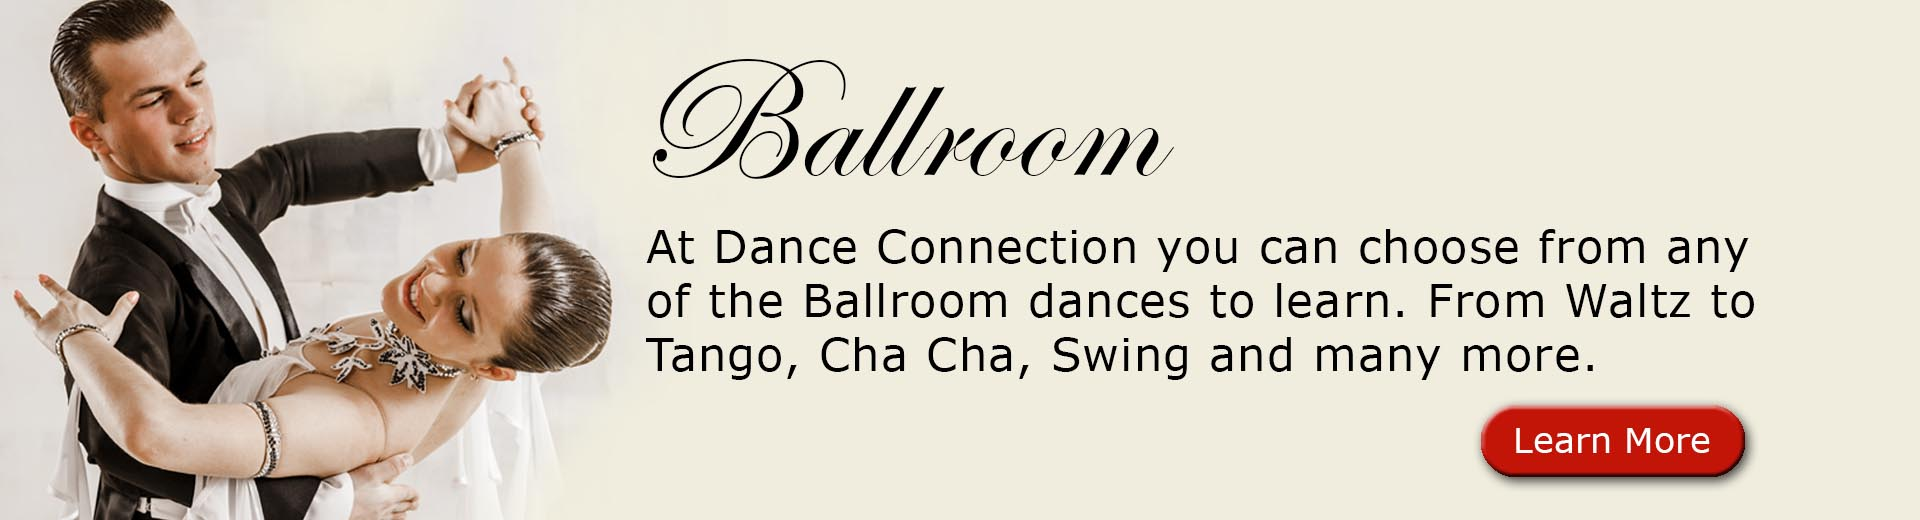 Ballroom Dance Lessons Chicago